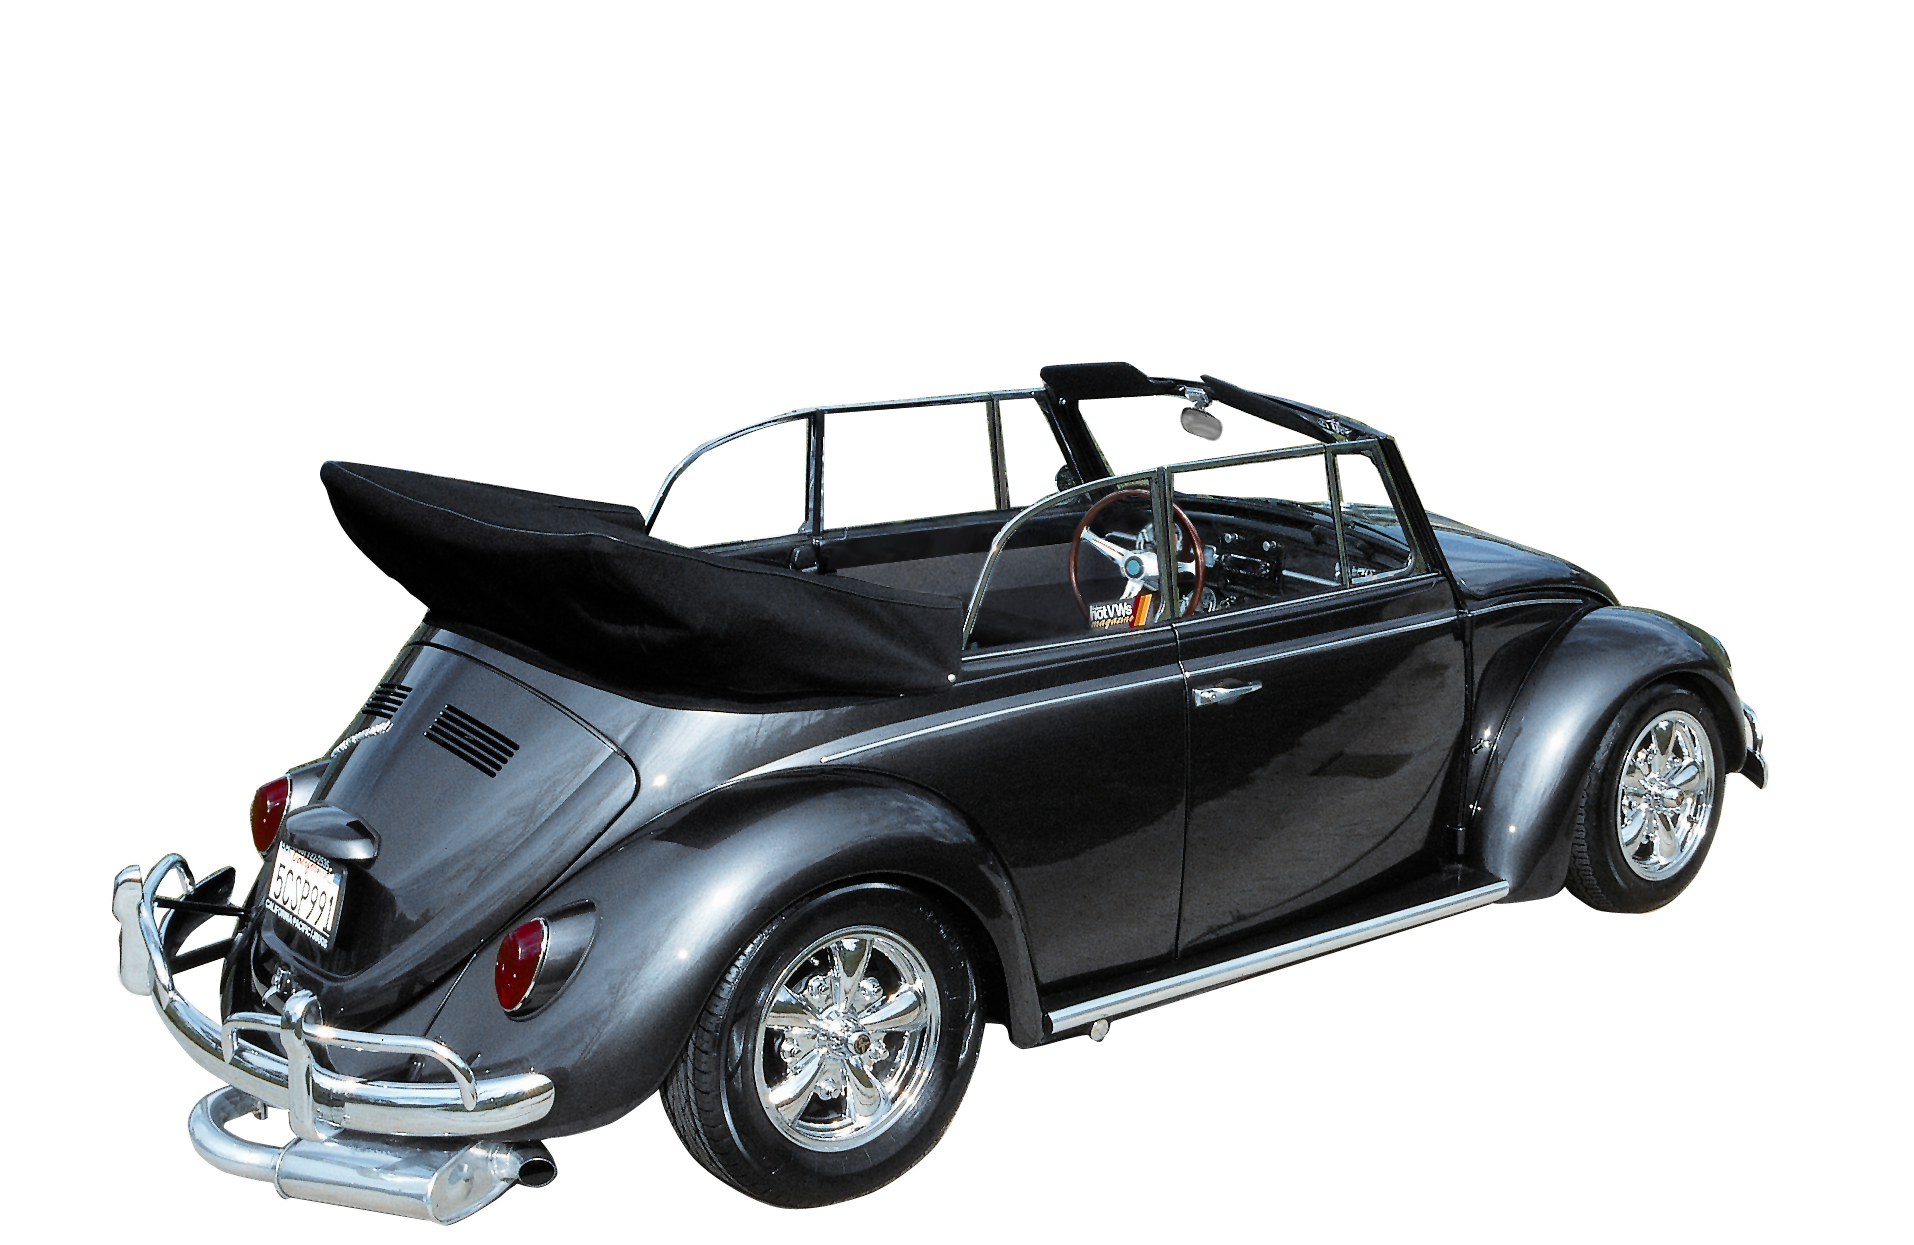 VW Parts | JBugs com: VW Beetle Parts